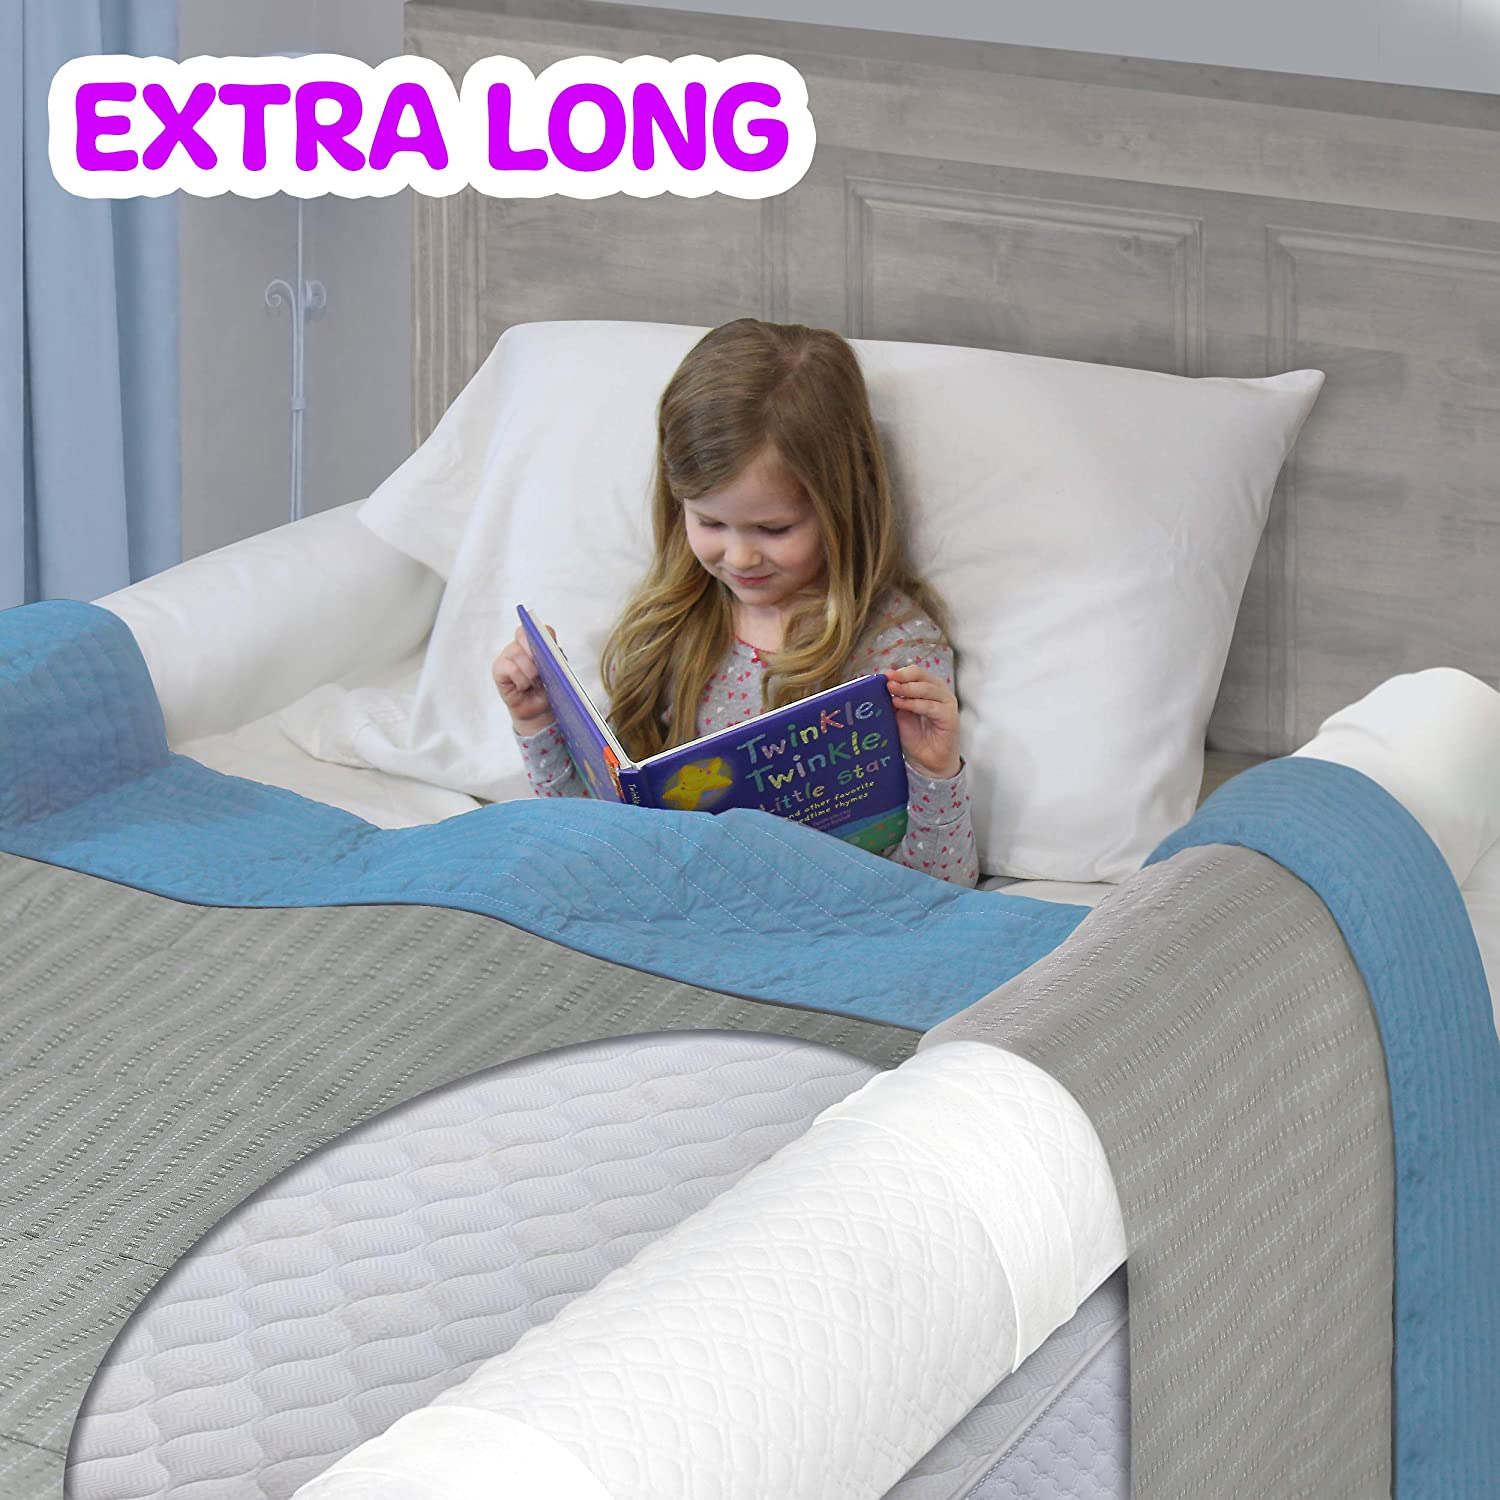 BuBumper Extra Long Best Bed Rail for Toddler